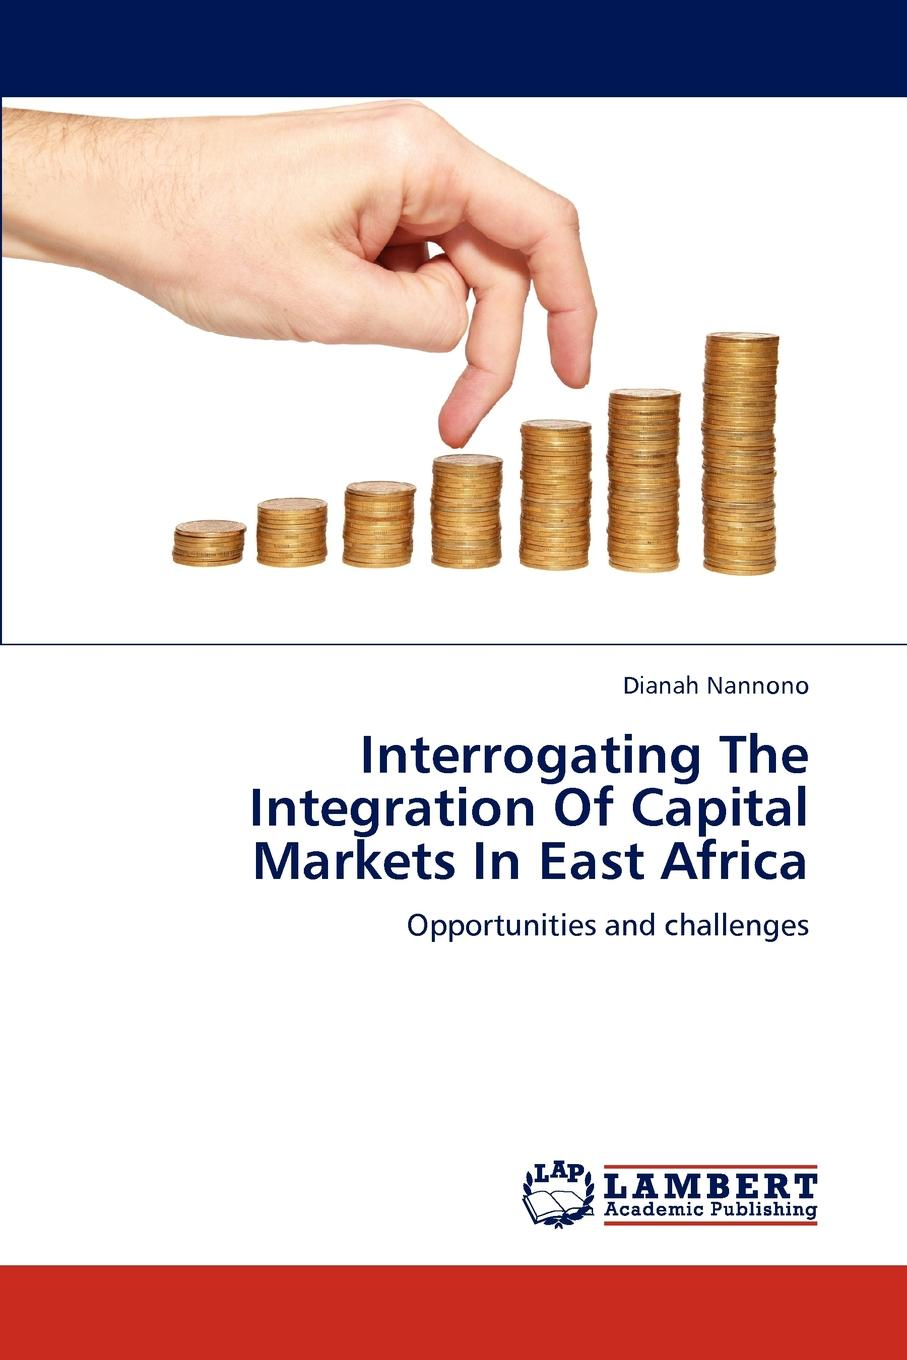 Dianah Nannono Interrogating The Integration Of Capital Markets In East Africa цена